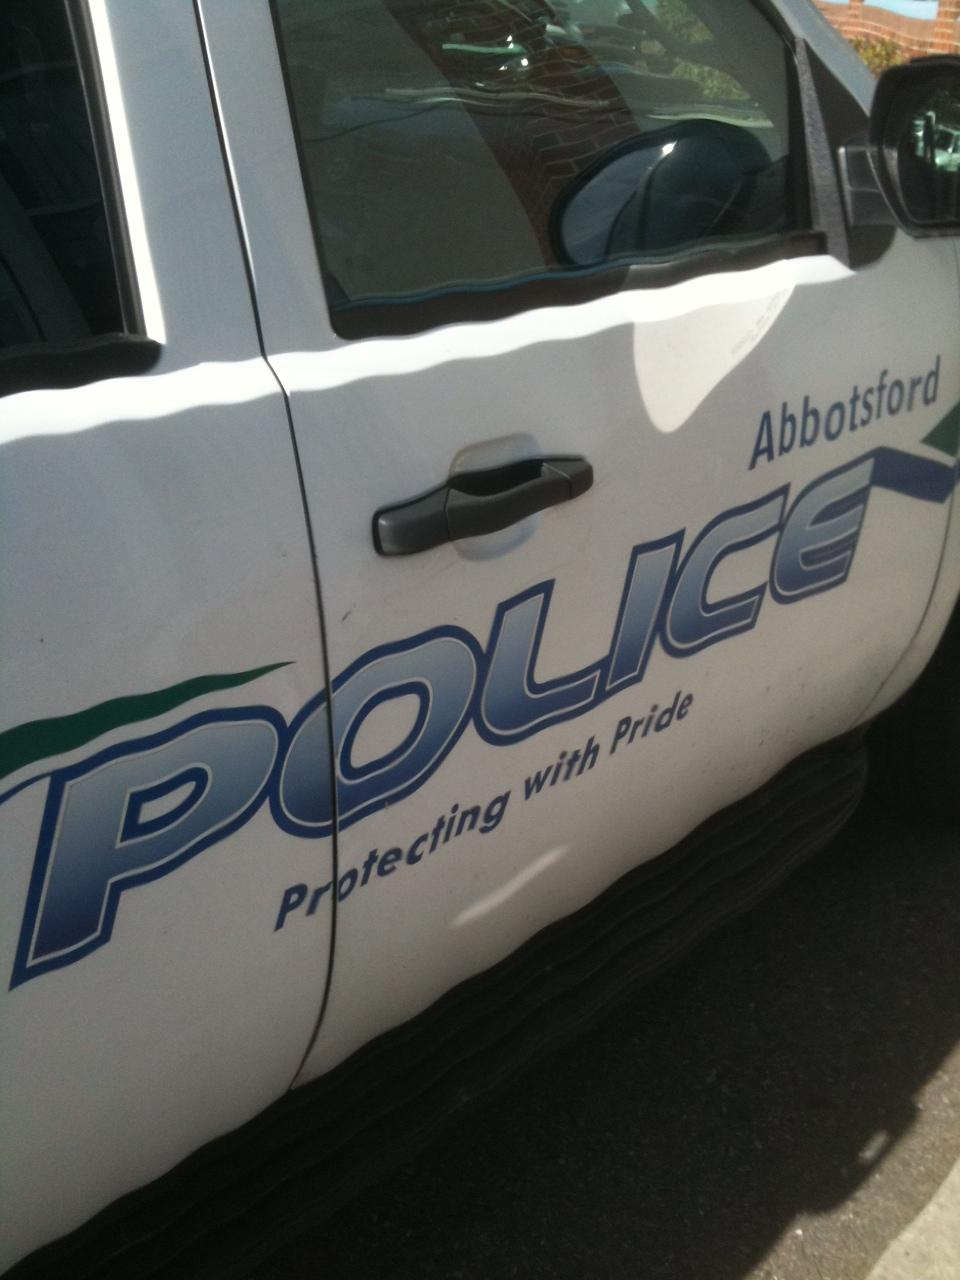 Abbotsford cop accused of lying fired